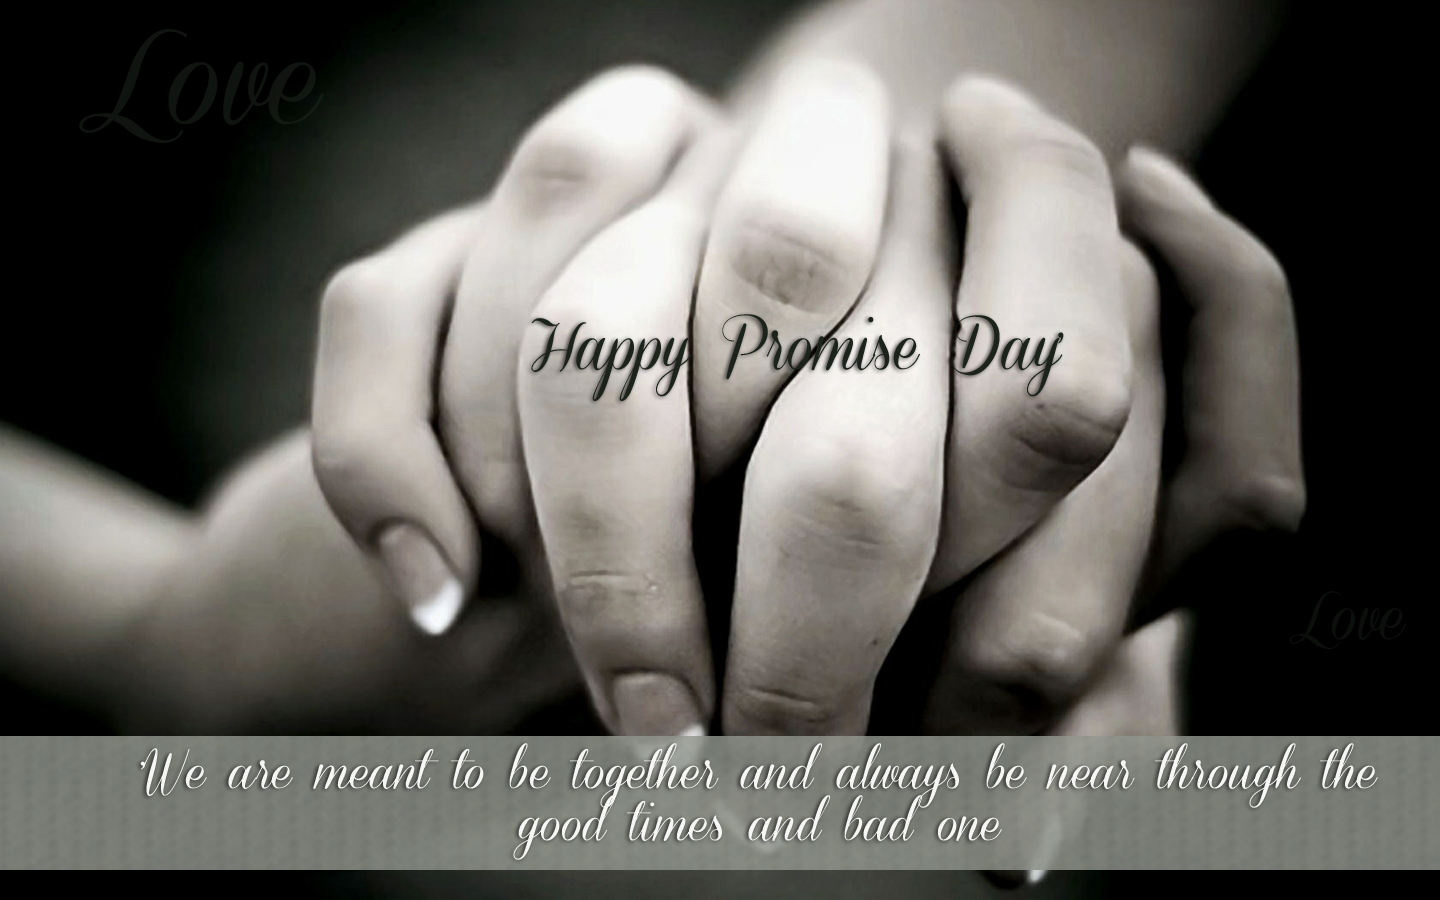 Promise Day 2017 HD Wallpaper Free Download